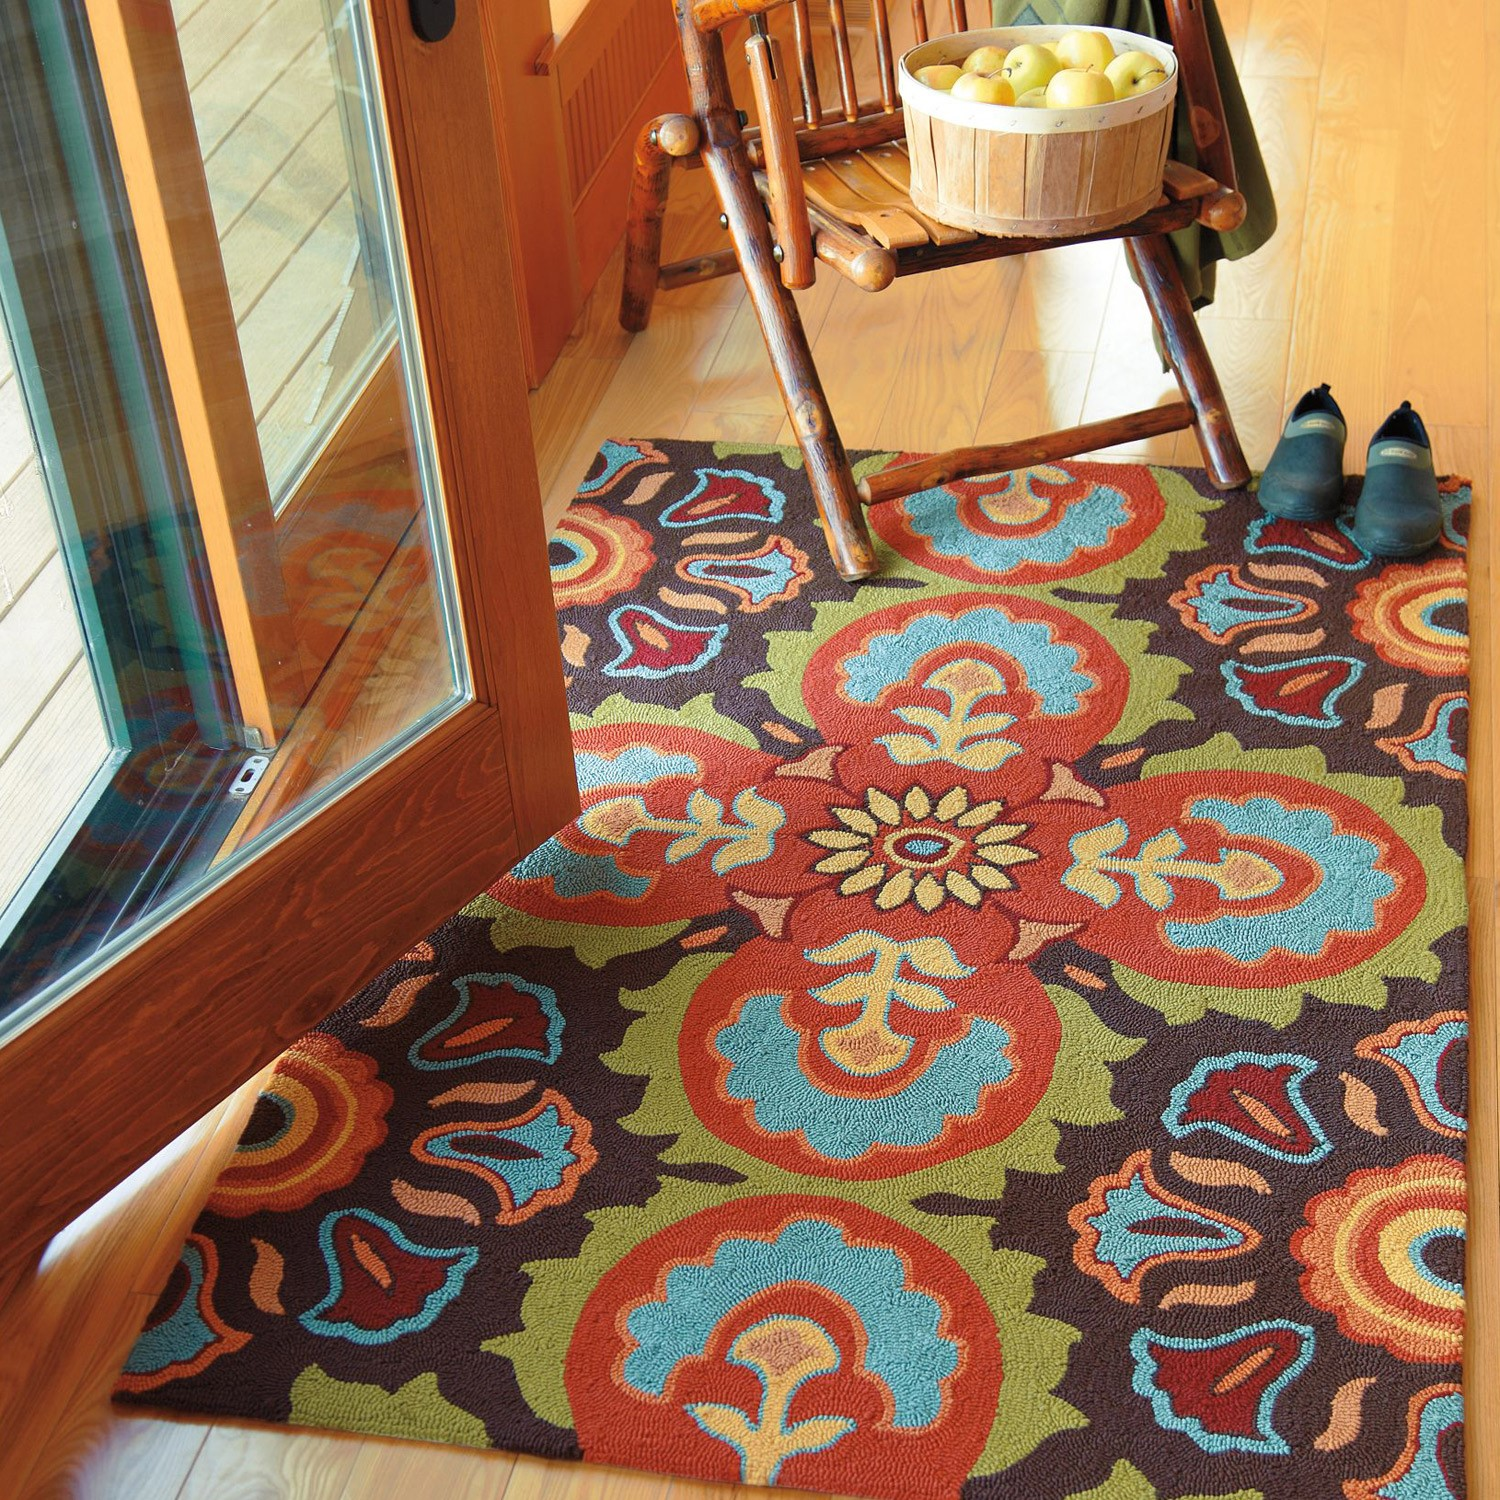 Nice Motif with Color Decorative Design company c rugs with harmony colors for indoor or outdoor ideas